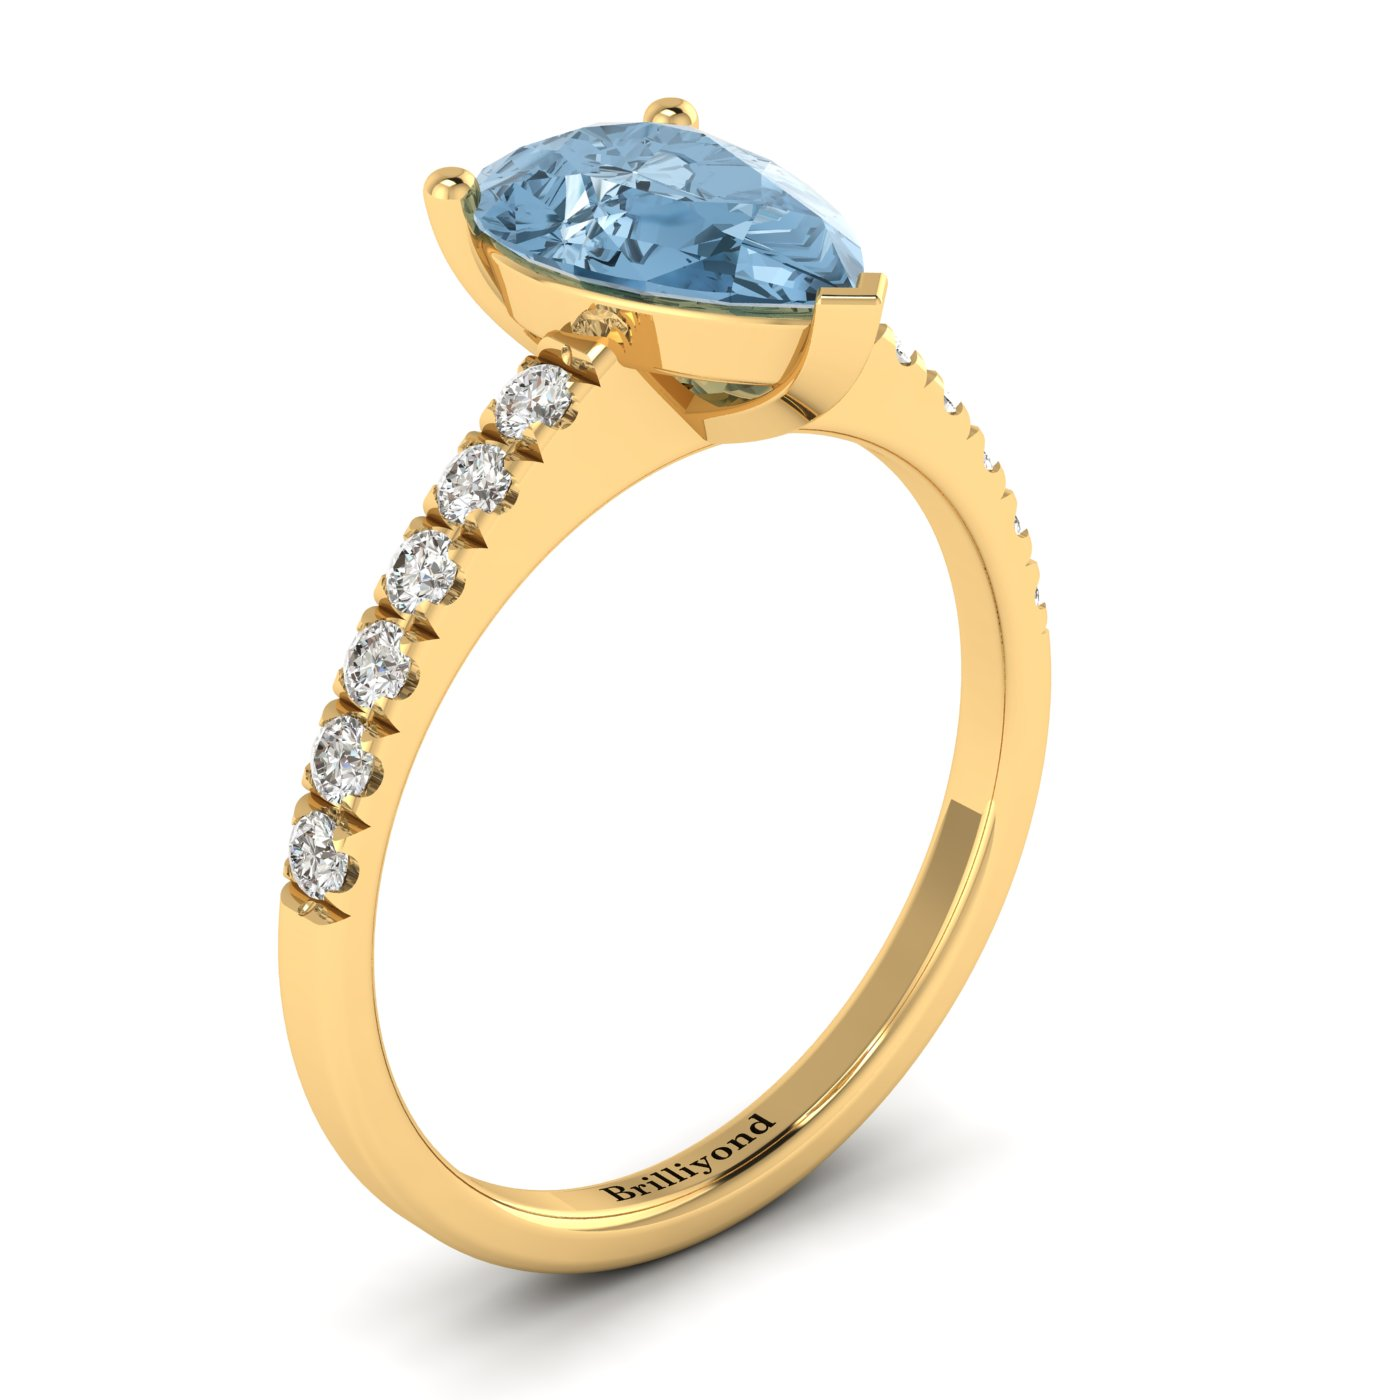 Brilliyond Jewellery's 18k Yellow Gold Aquamarine Solitaire Engagement Ring